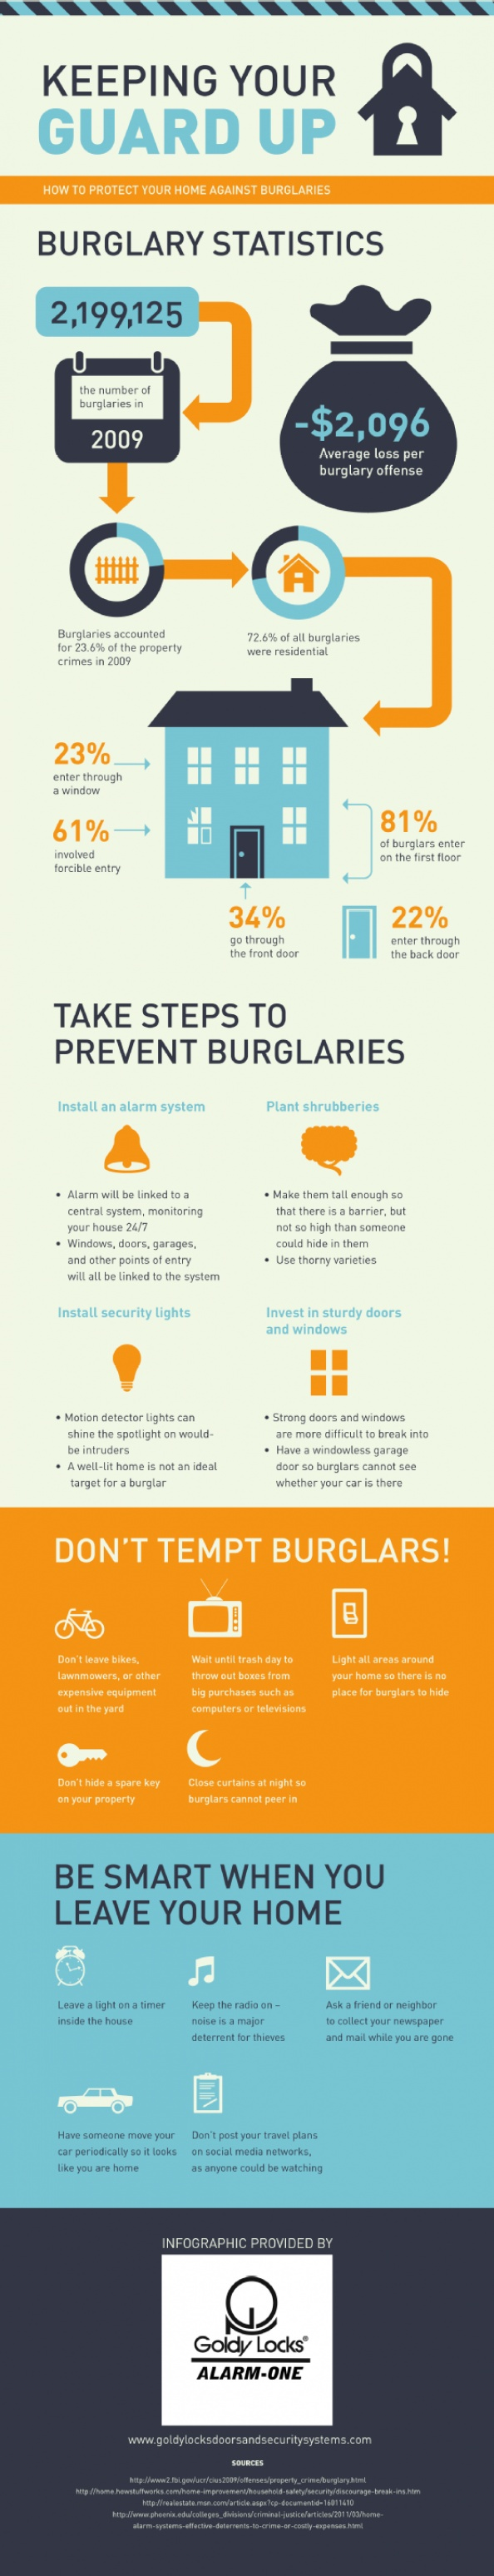 Keeping Your Guard Up: How to Protect Your Home Against Burglaries / visual.ly